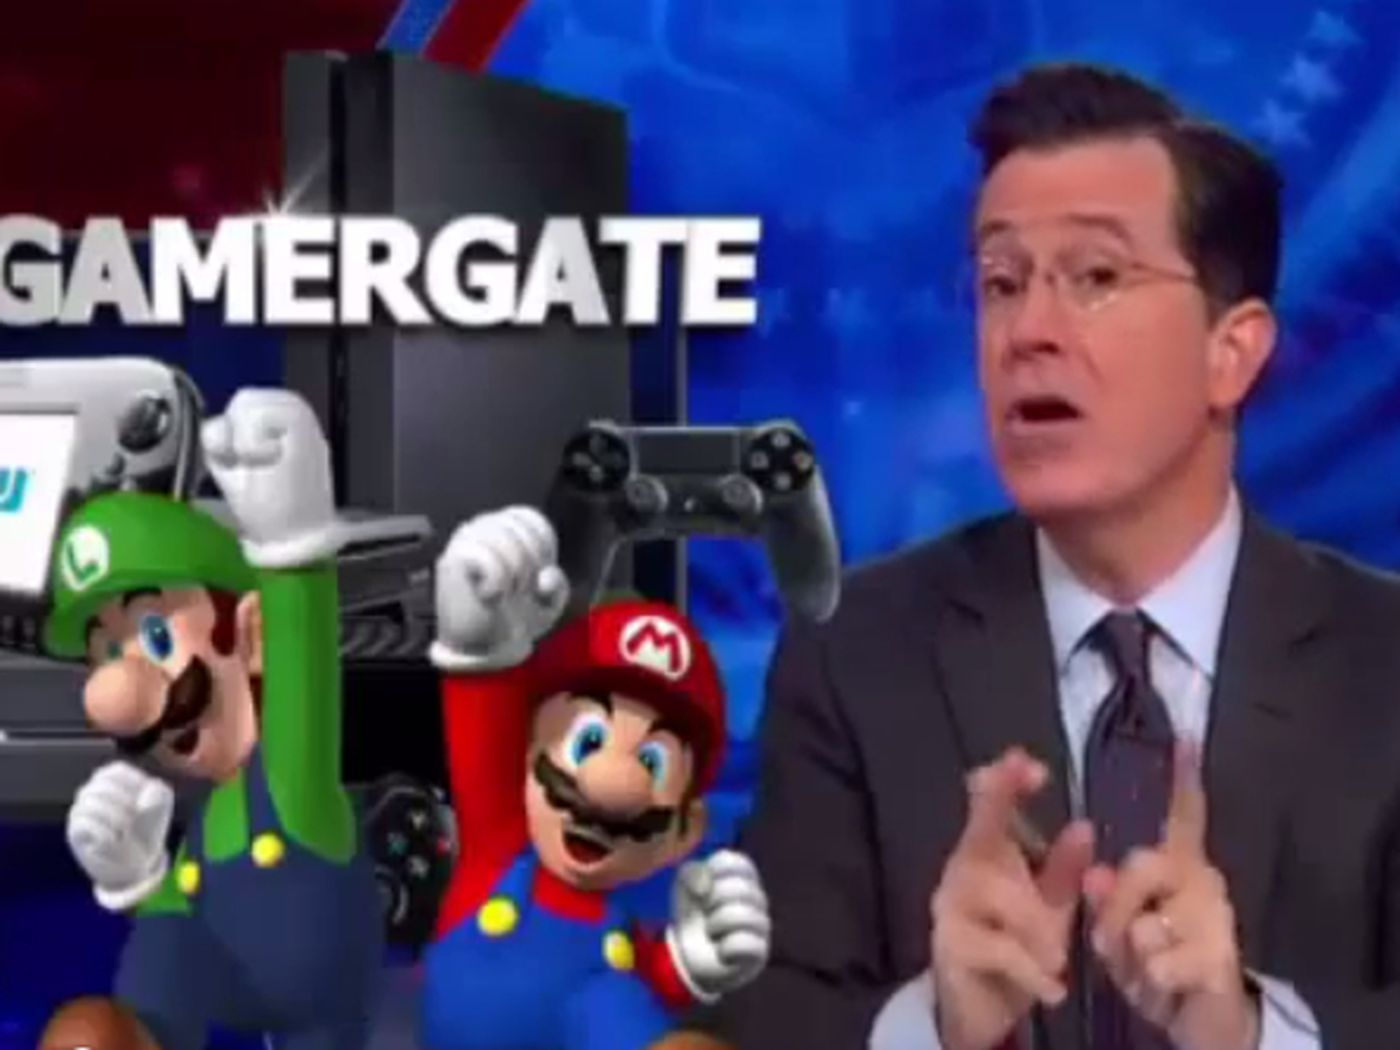 Gamergate and the politicization of absolutely everything - Vox